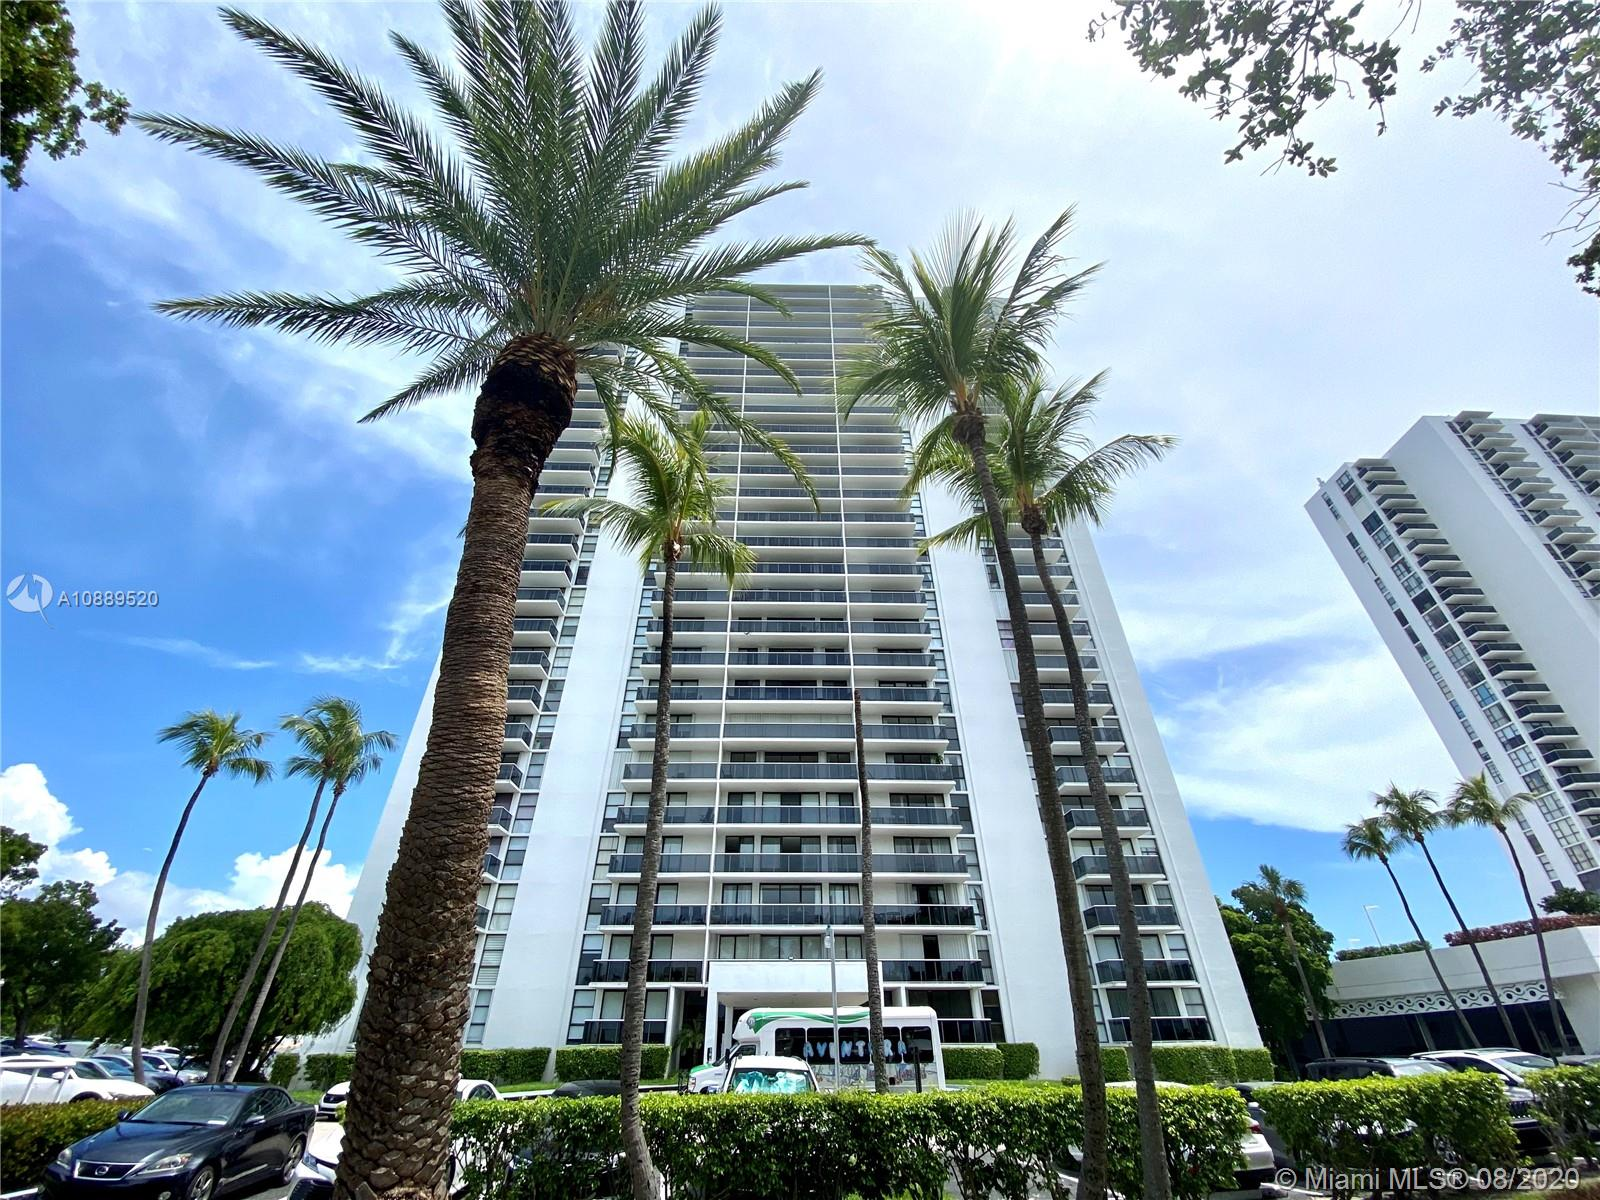 Eldorado Tower One #210 - 3625 N Country Club Dr #210, Aventura, FL 33180